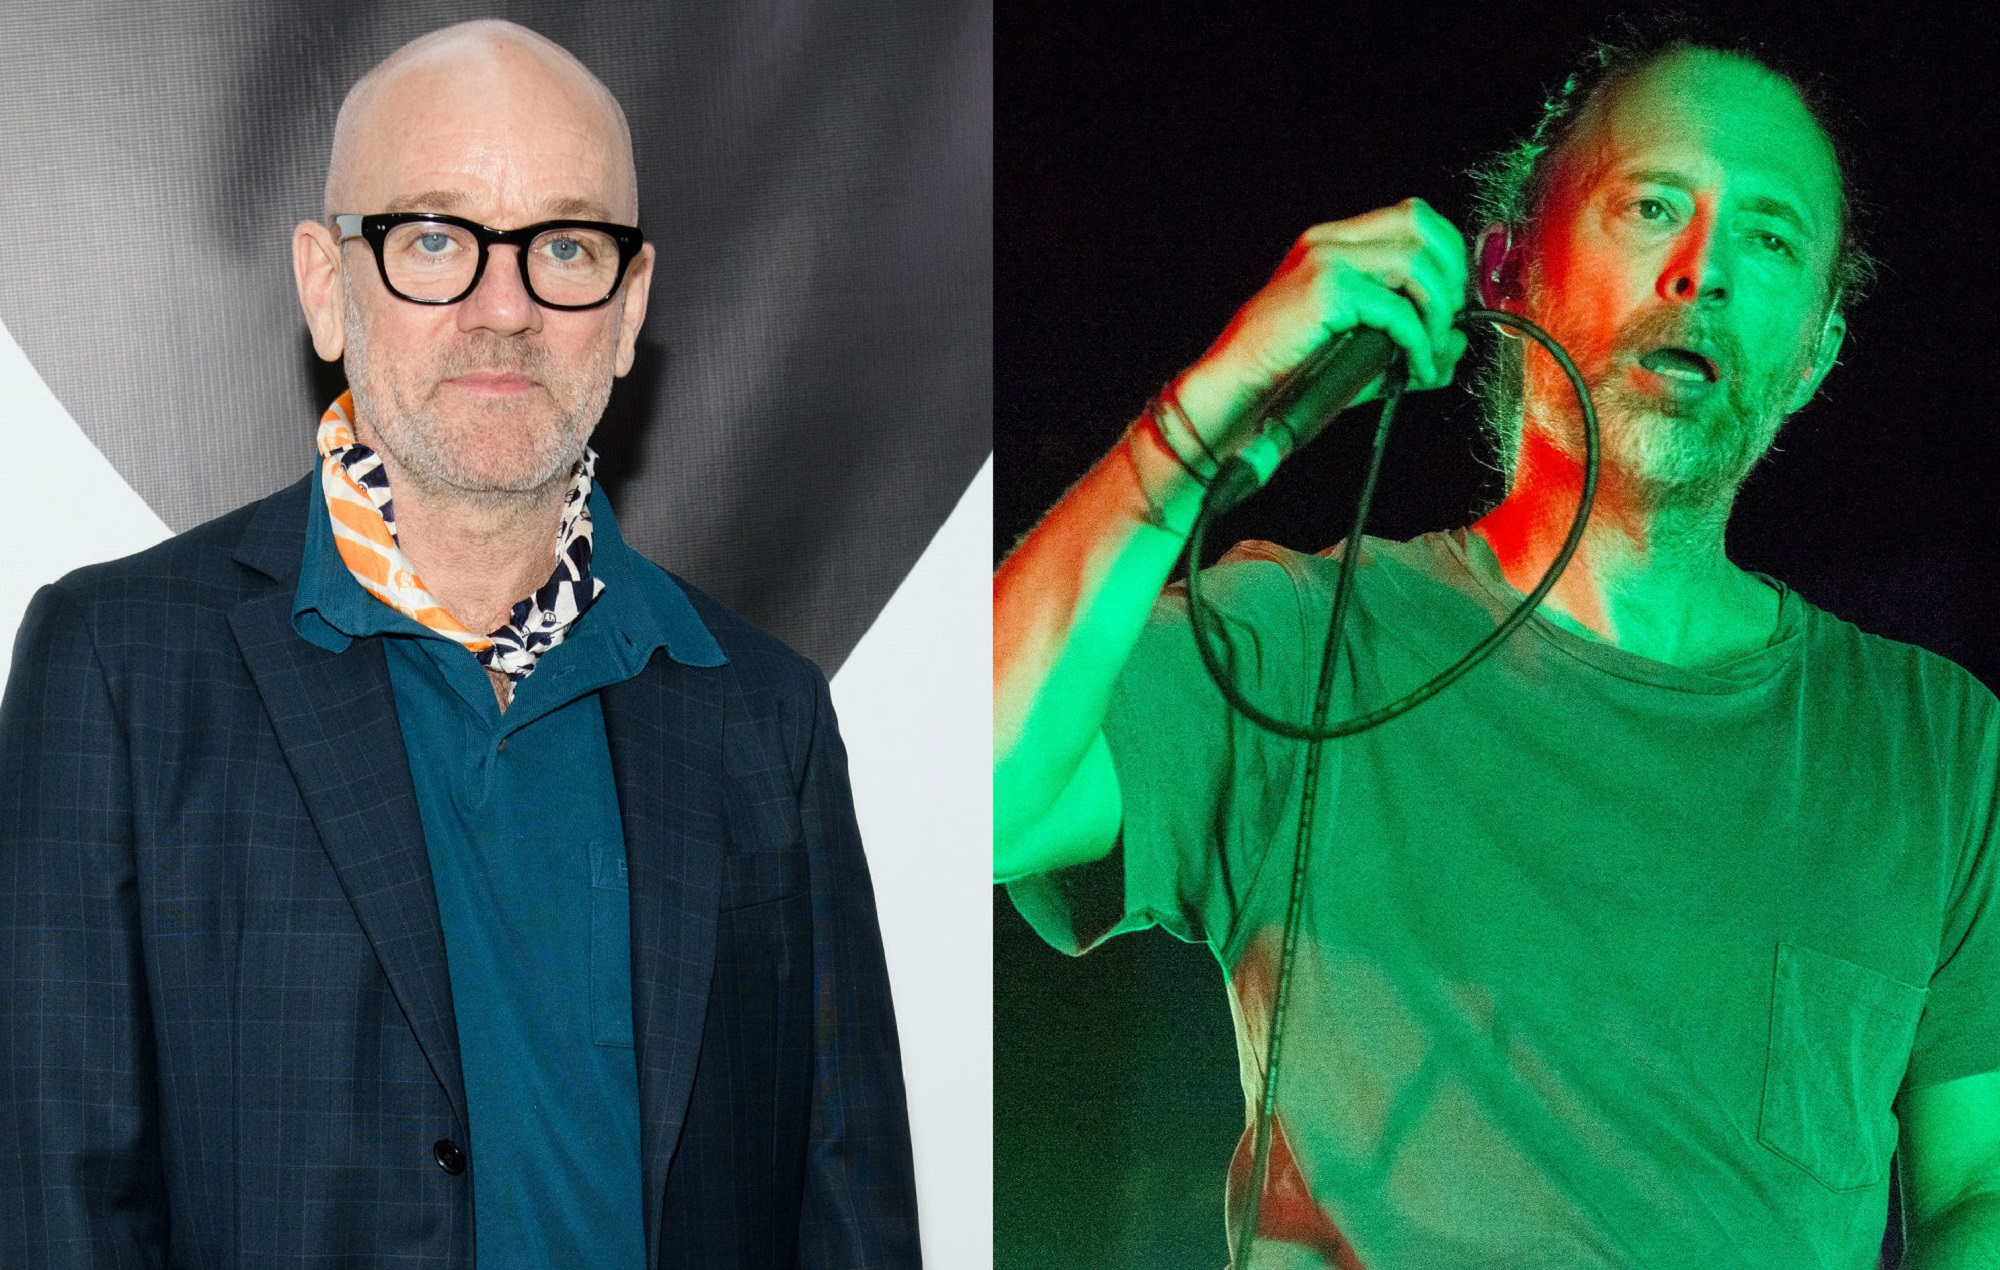 NME Festival blog: R.E.M. share unreleased version of 'E-Bow The Letter' featuring Thom Yorke